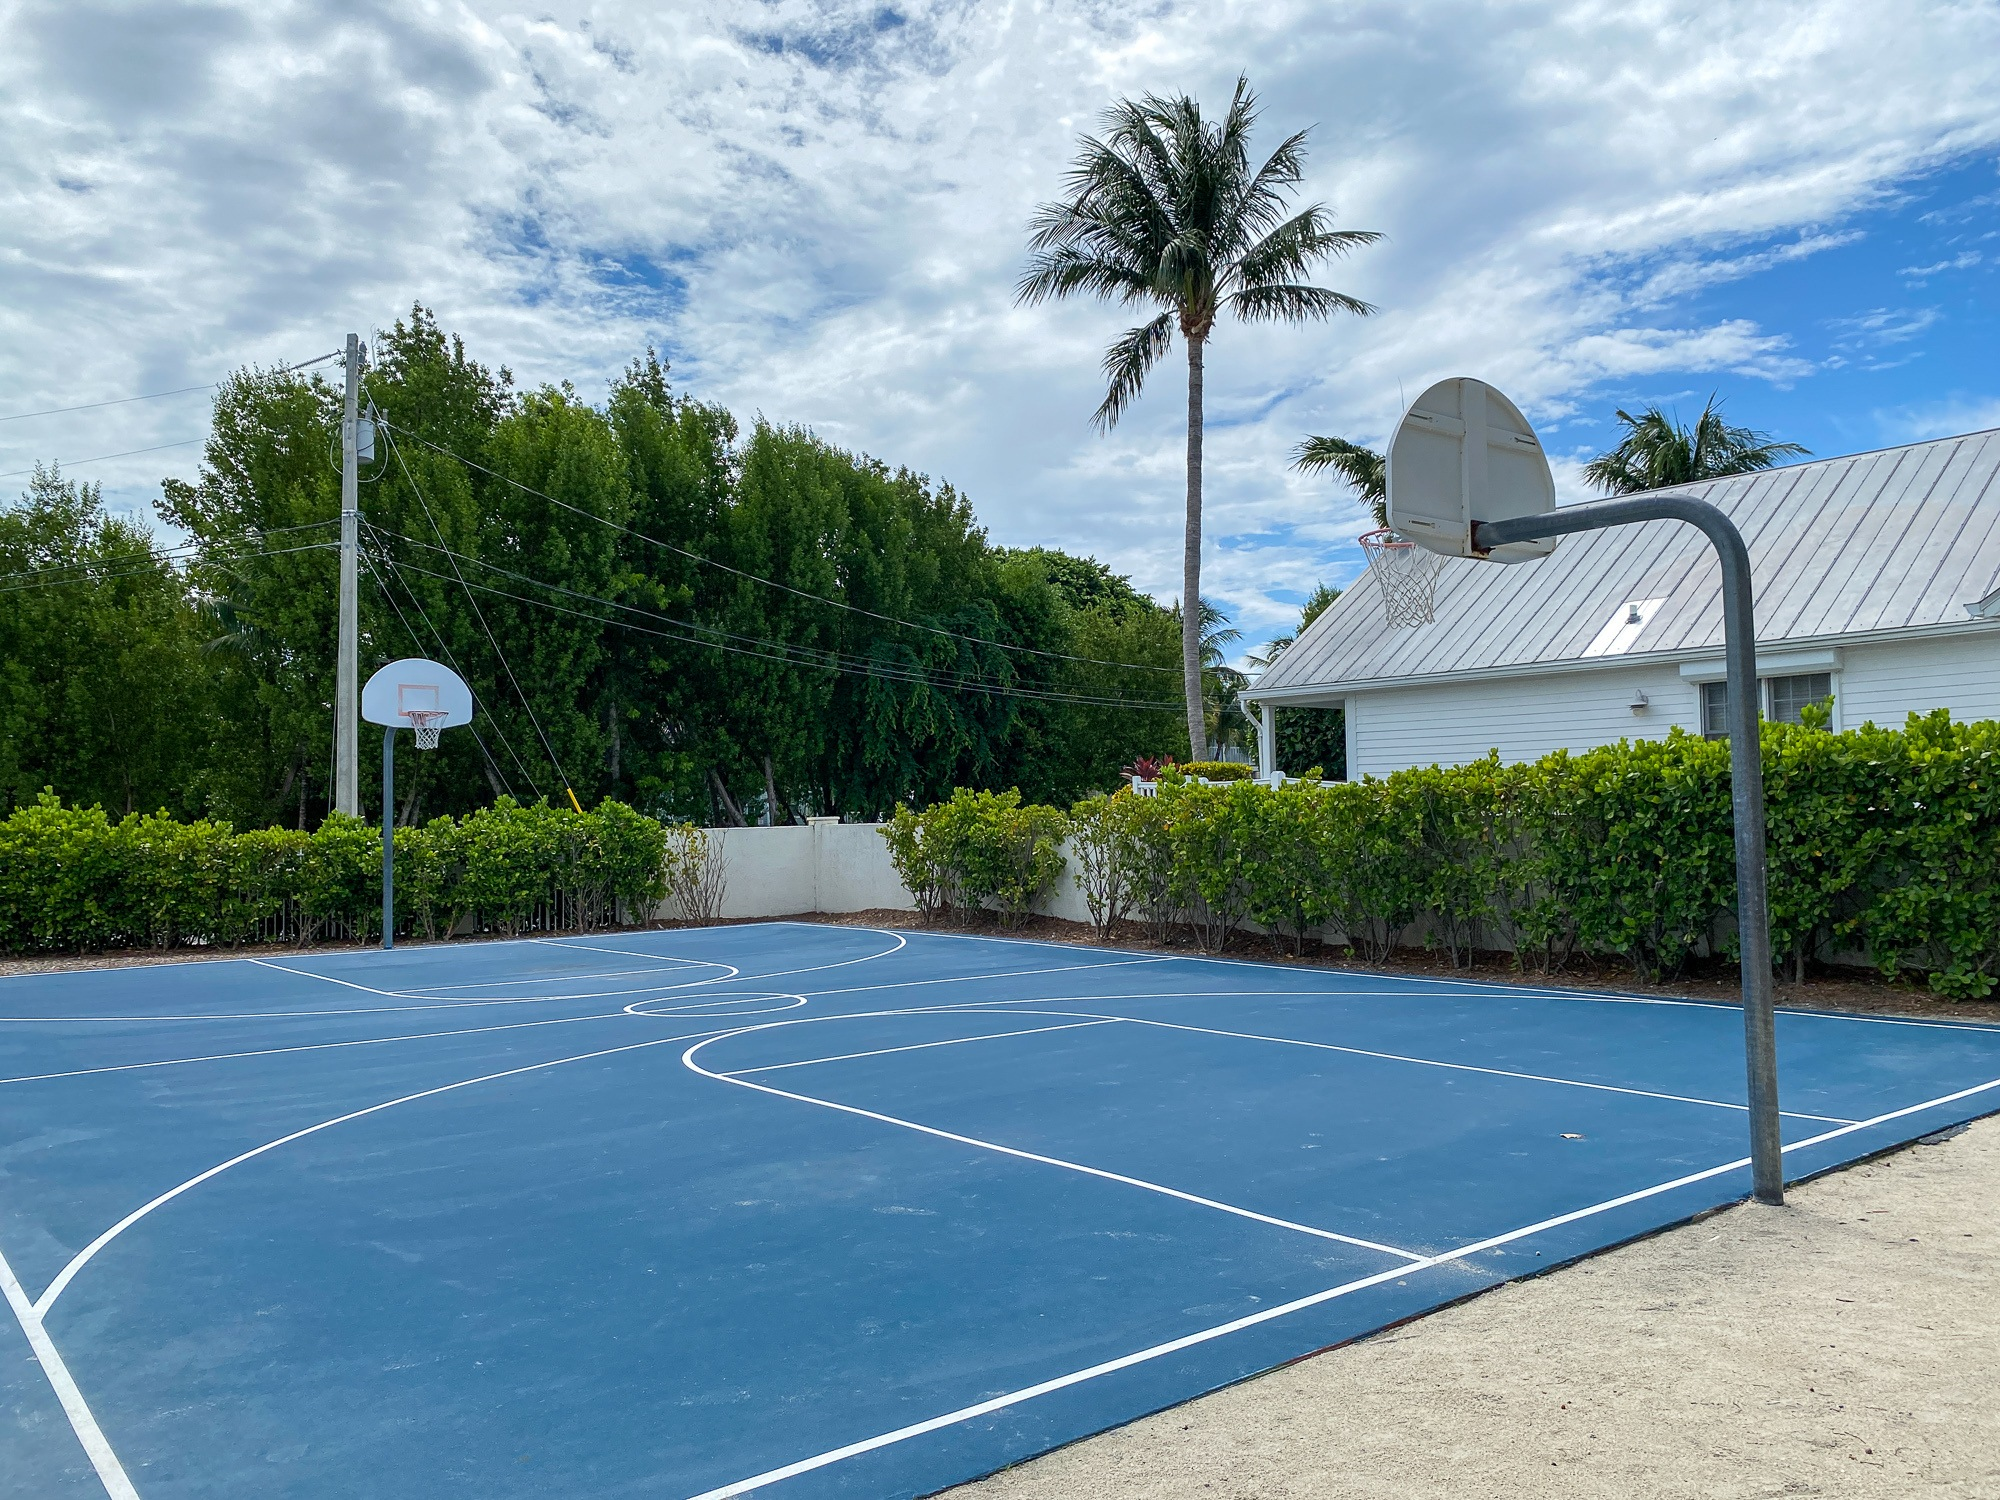 Basketball court at Coral Cay